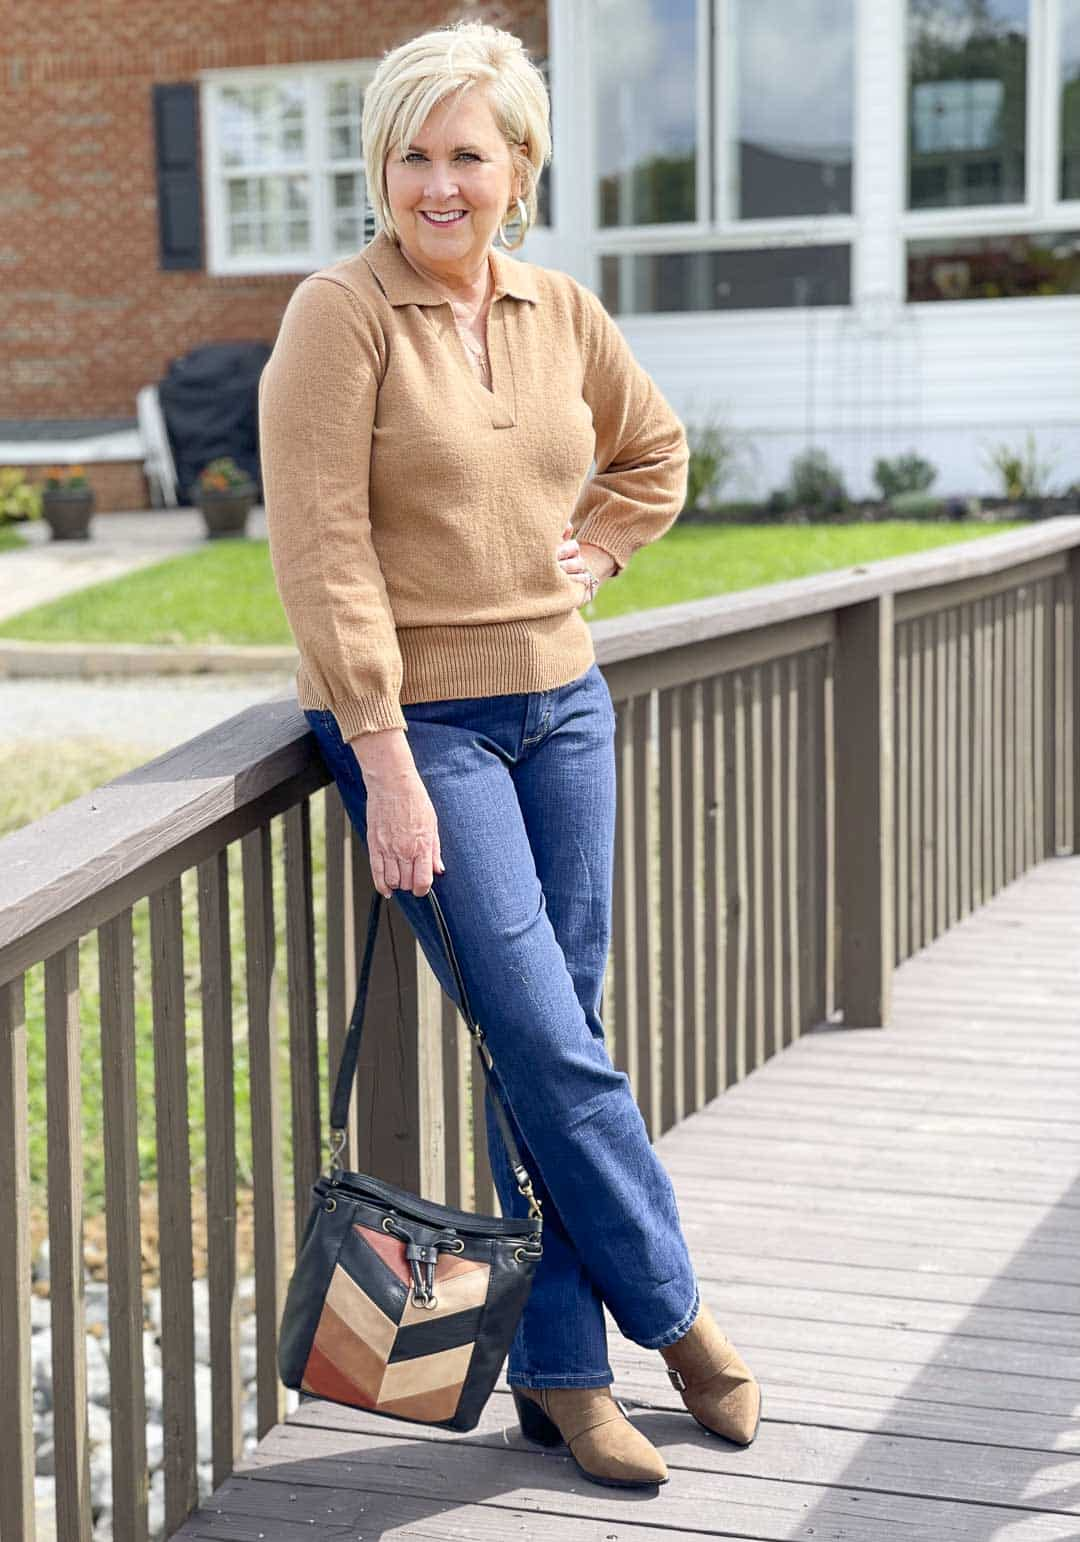 Over 40 Fashion Blogger, Tania Stephens, is showing her recent Walmart haul including this camel polo sweater, bootcut jeans, and patchwork bag